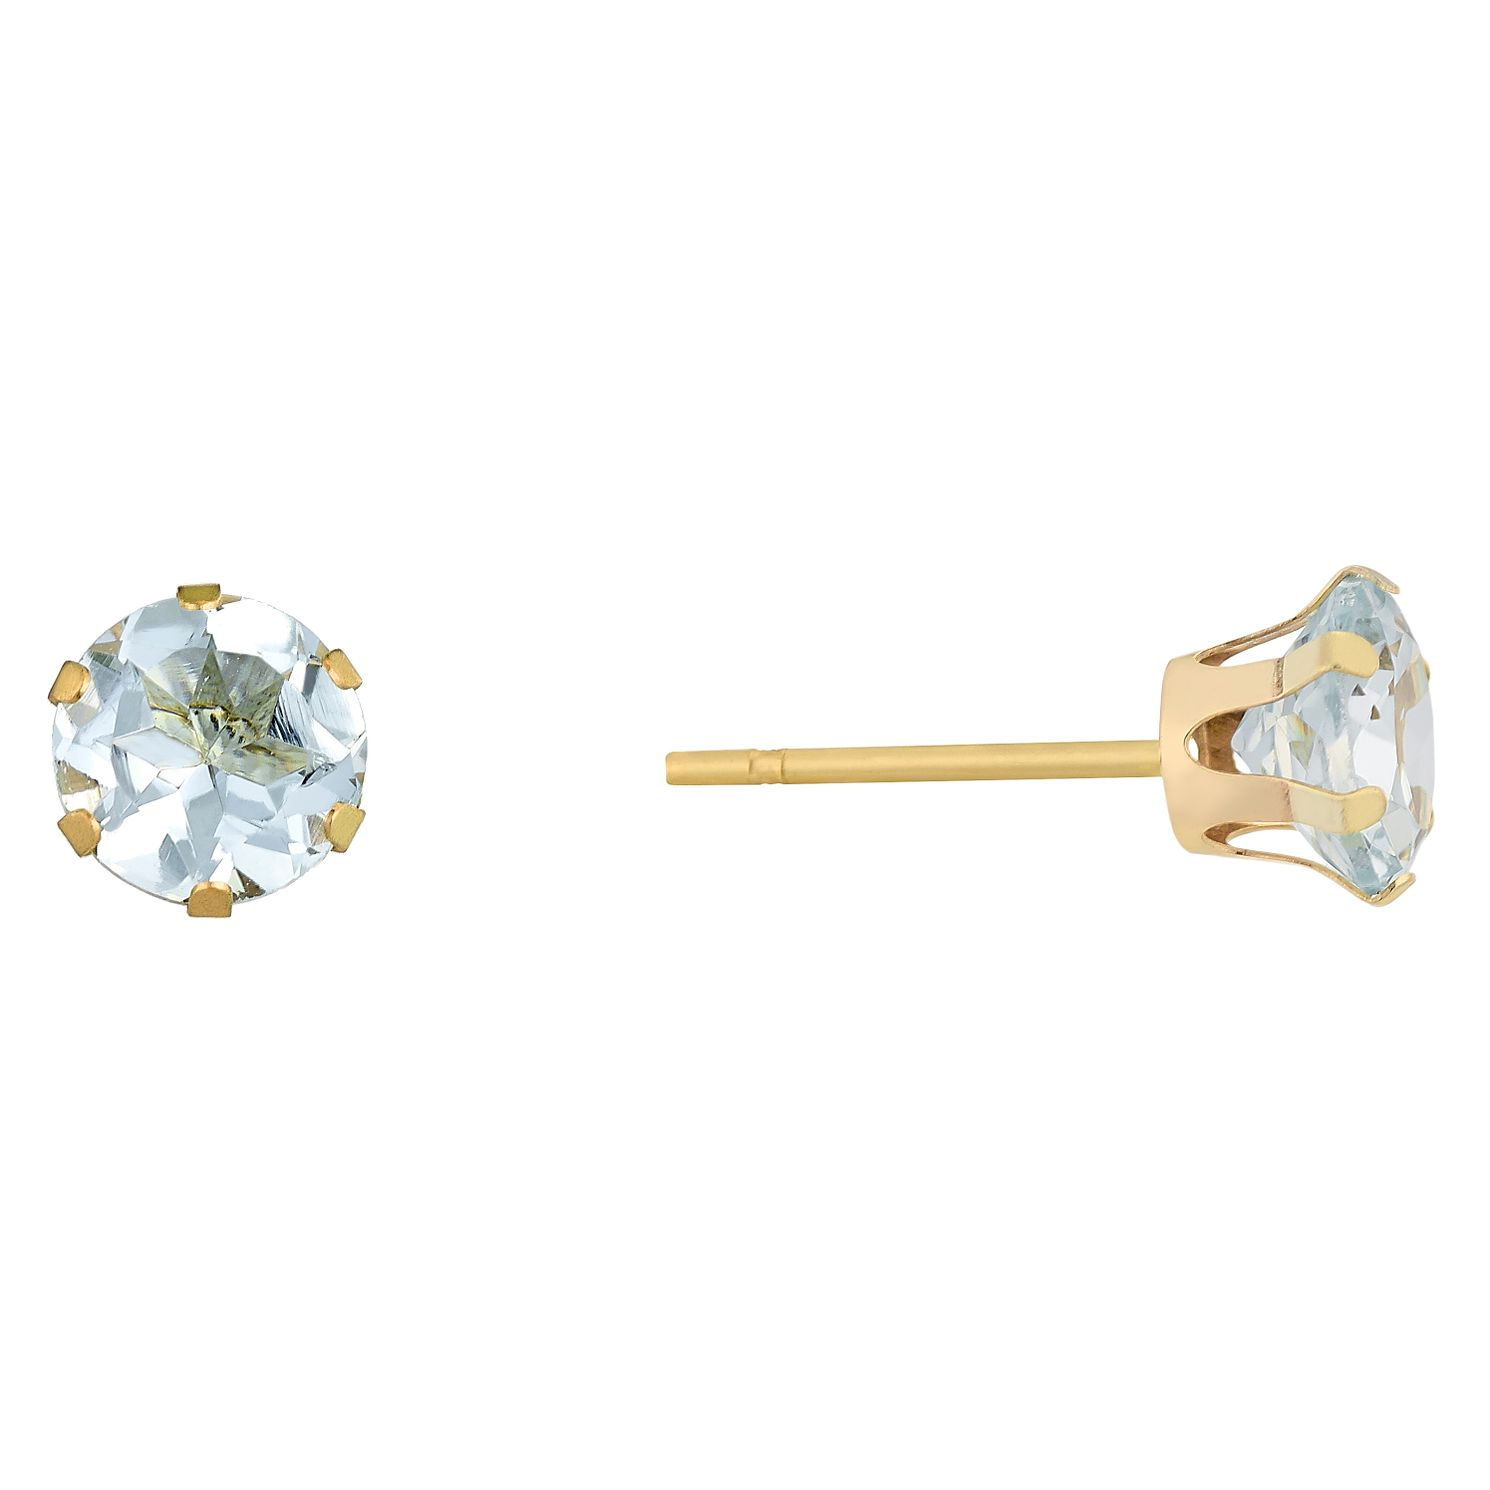 silver marine home loading zoom earrings stud birthstone aqua cz sterling march aquamarine